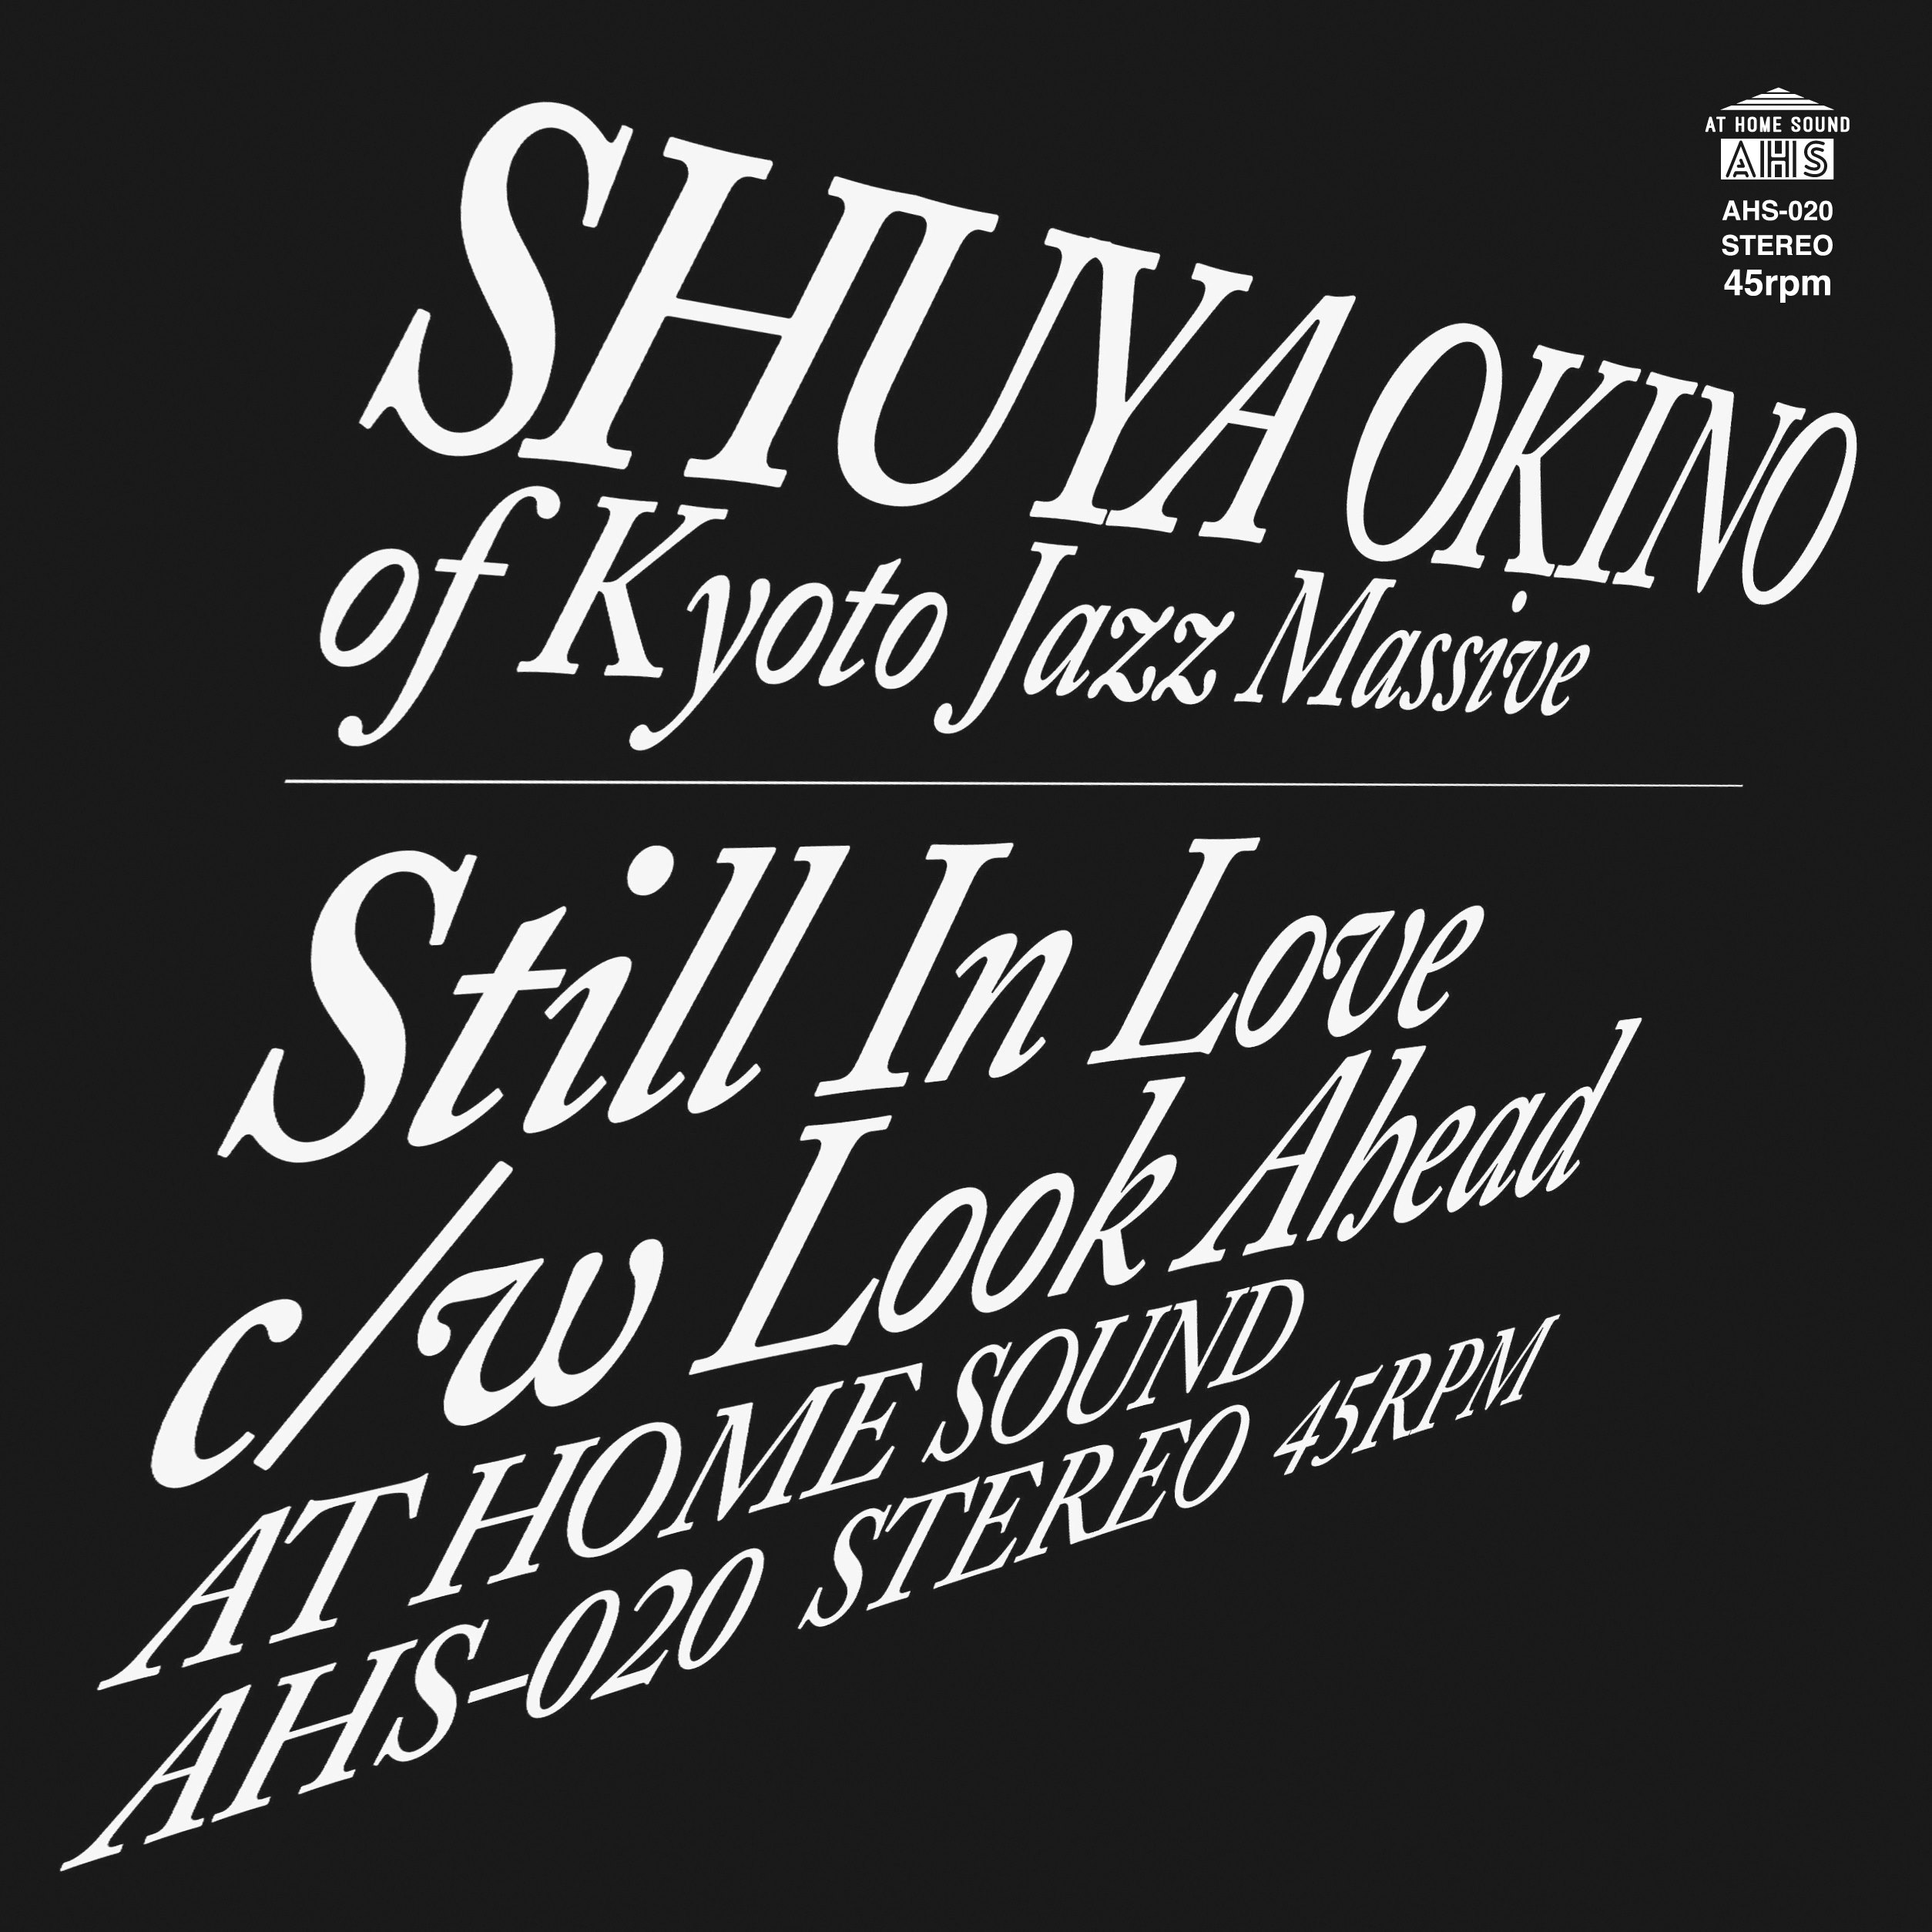 SHUYA OKINO (沖野修也) / STILL IN LOVE